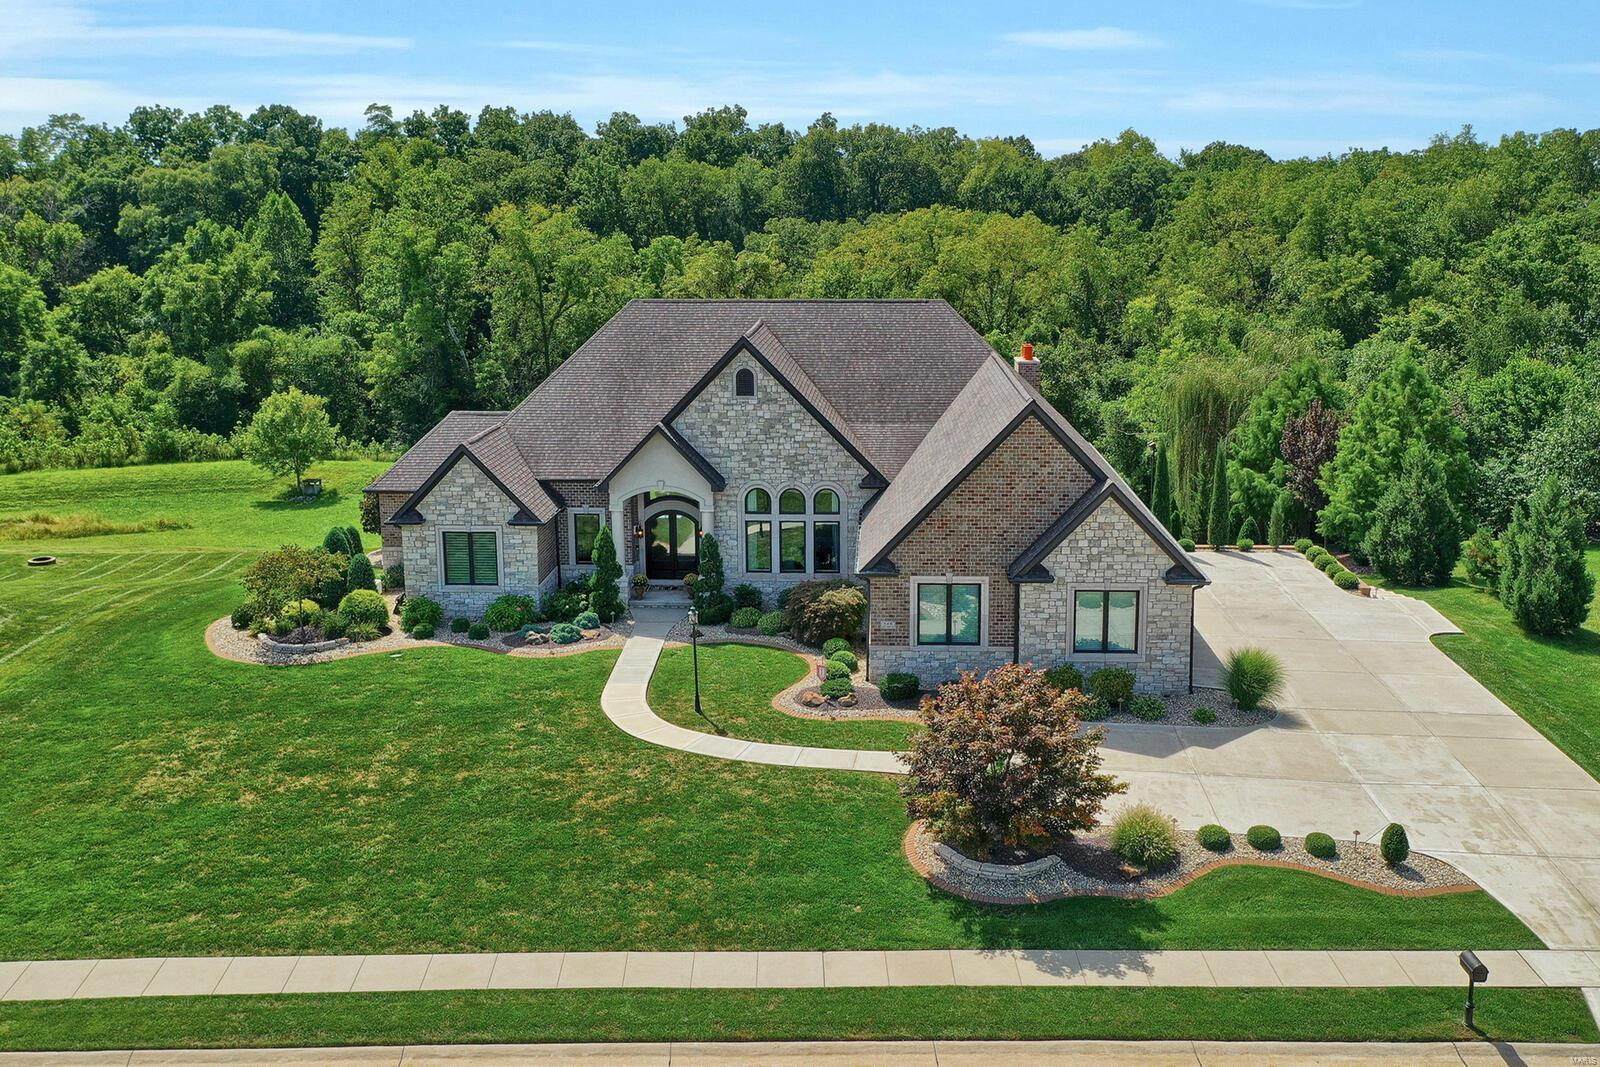 8416 Rock Ridge Property Photo - Edwardsville, IL real estate listing